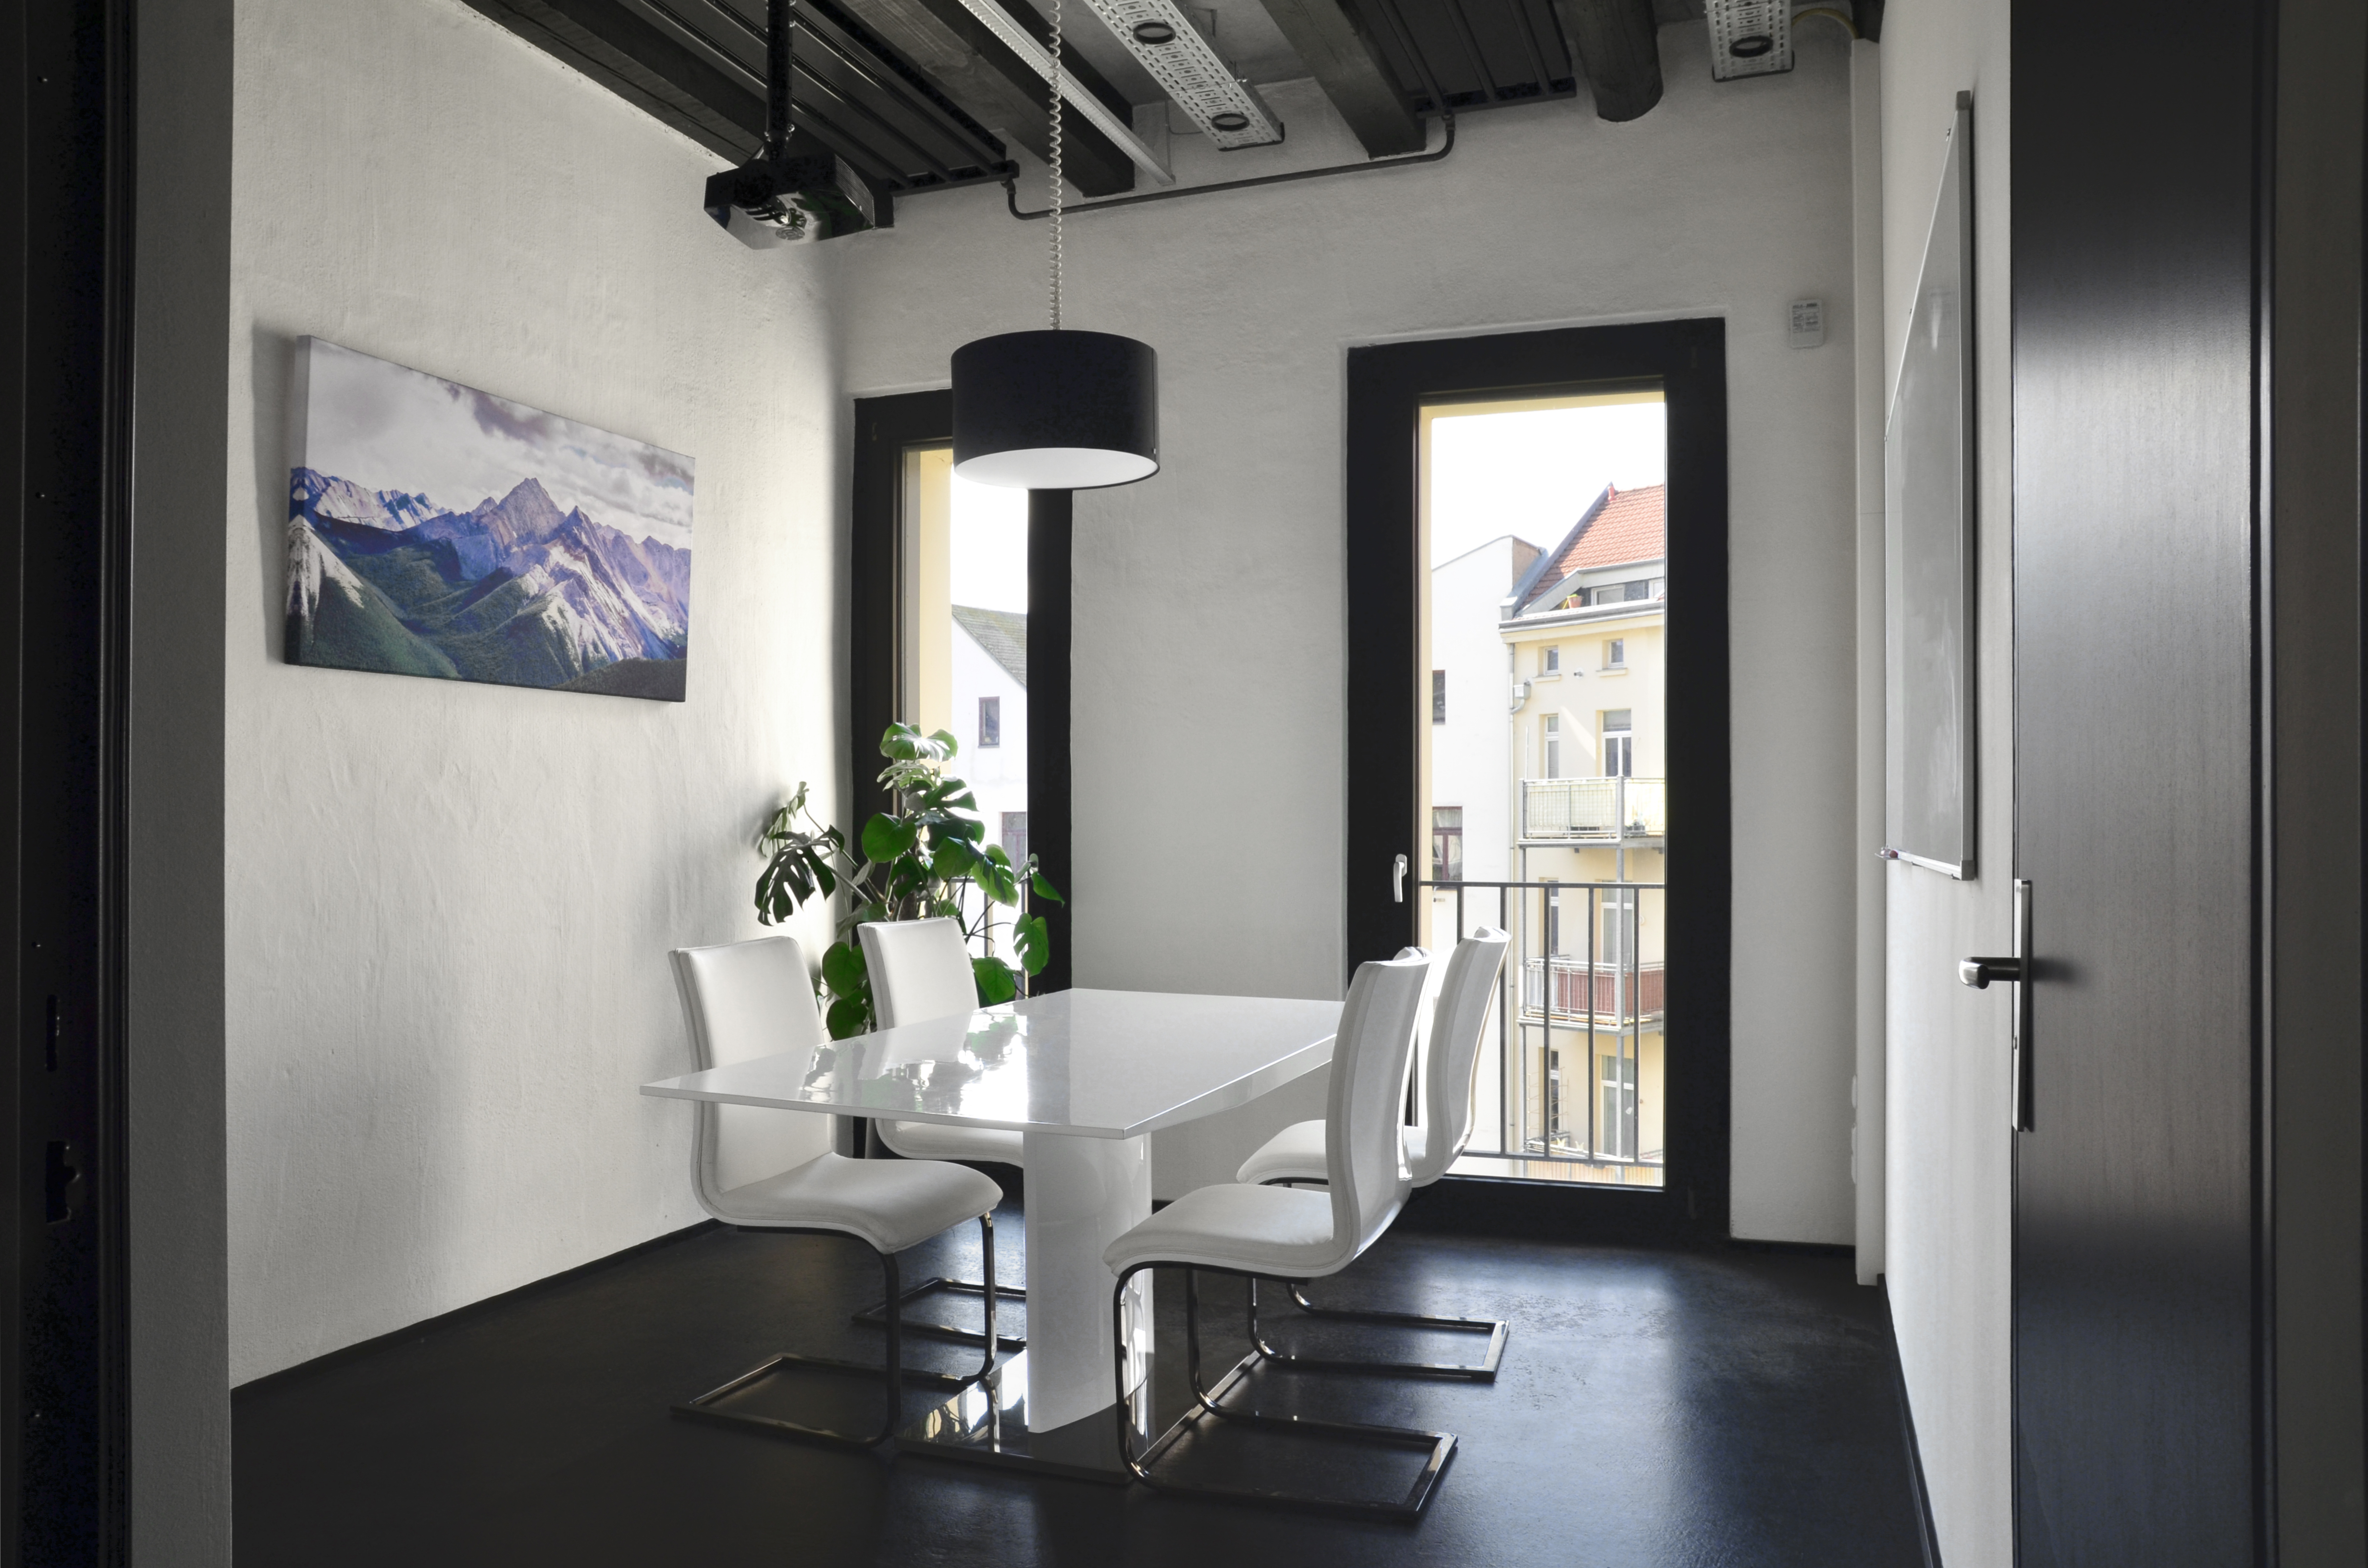 basislager coworking schneekoppe mieten in leipzig. Black Bedroom Furniture Sets. Home Design Ideas